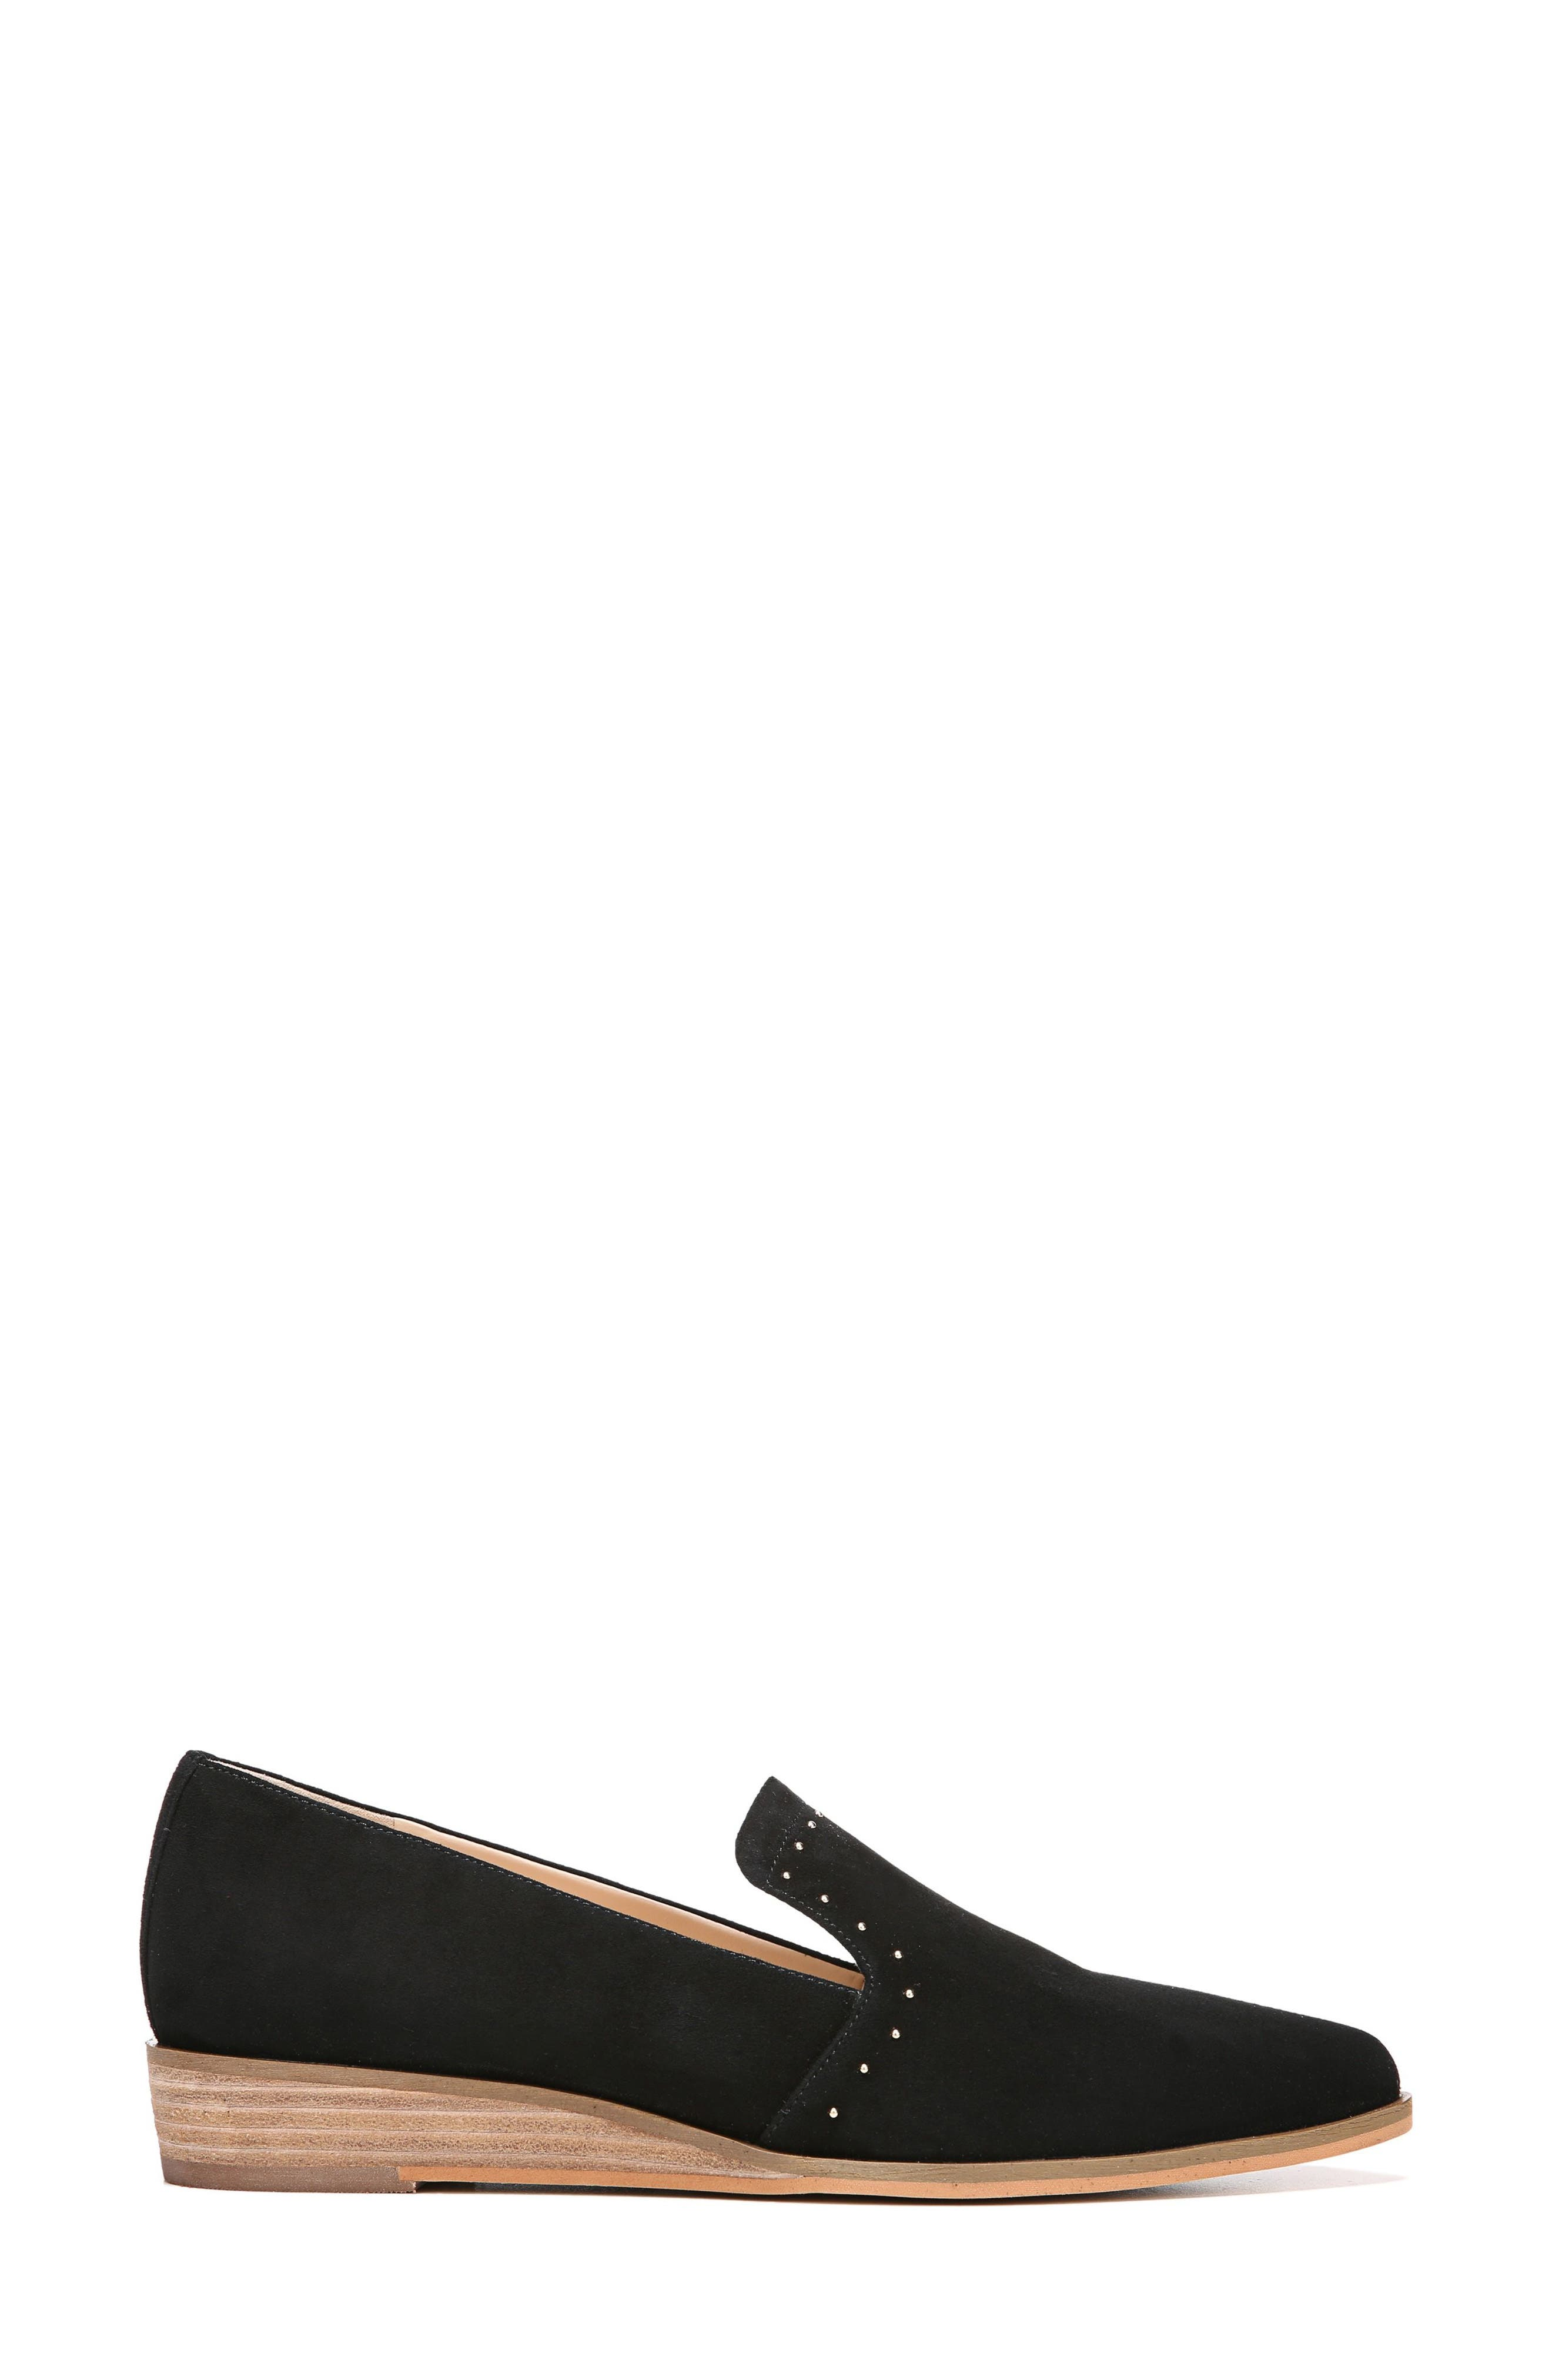 Keane Loafer Wedge,                             Alternate thumbnail 3, color,                             Black Suede